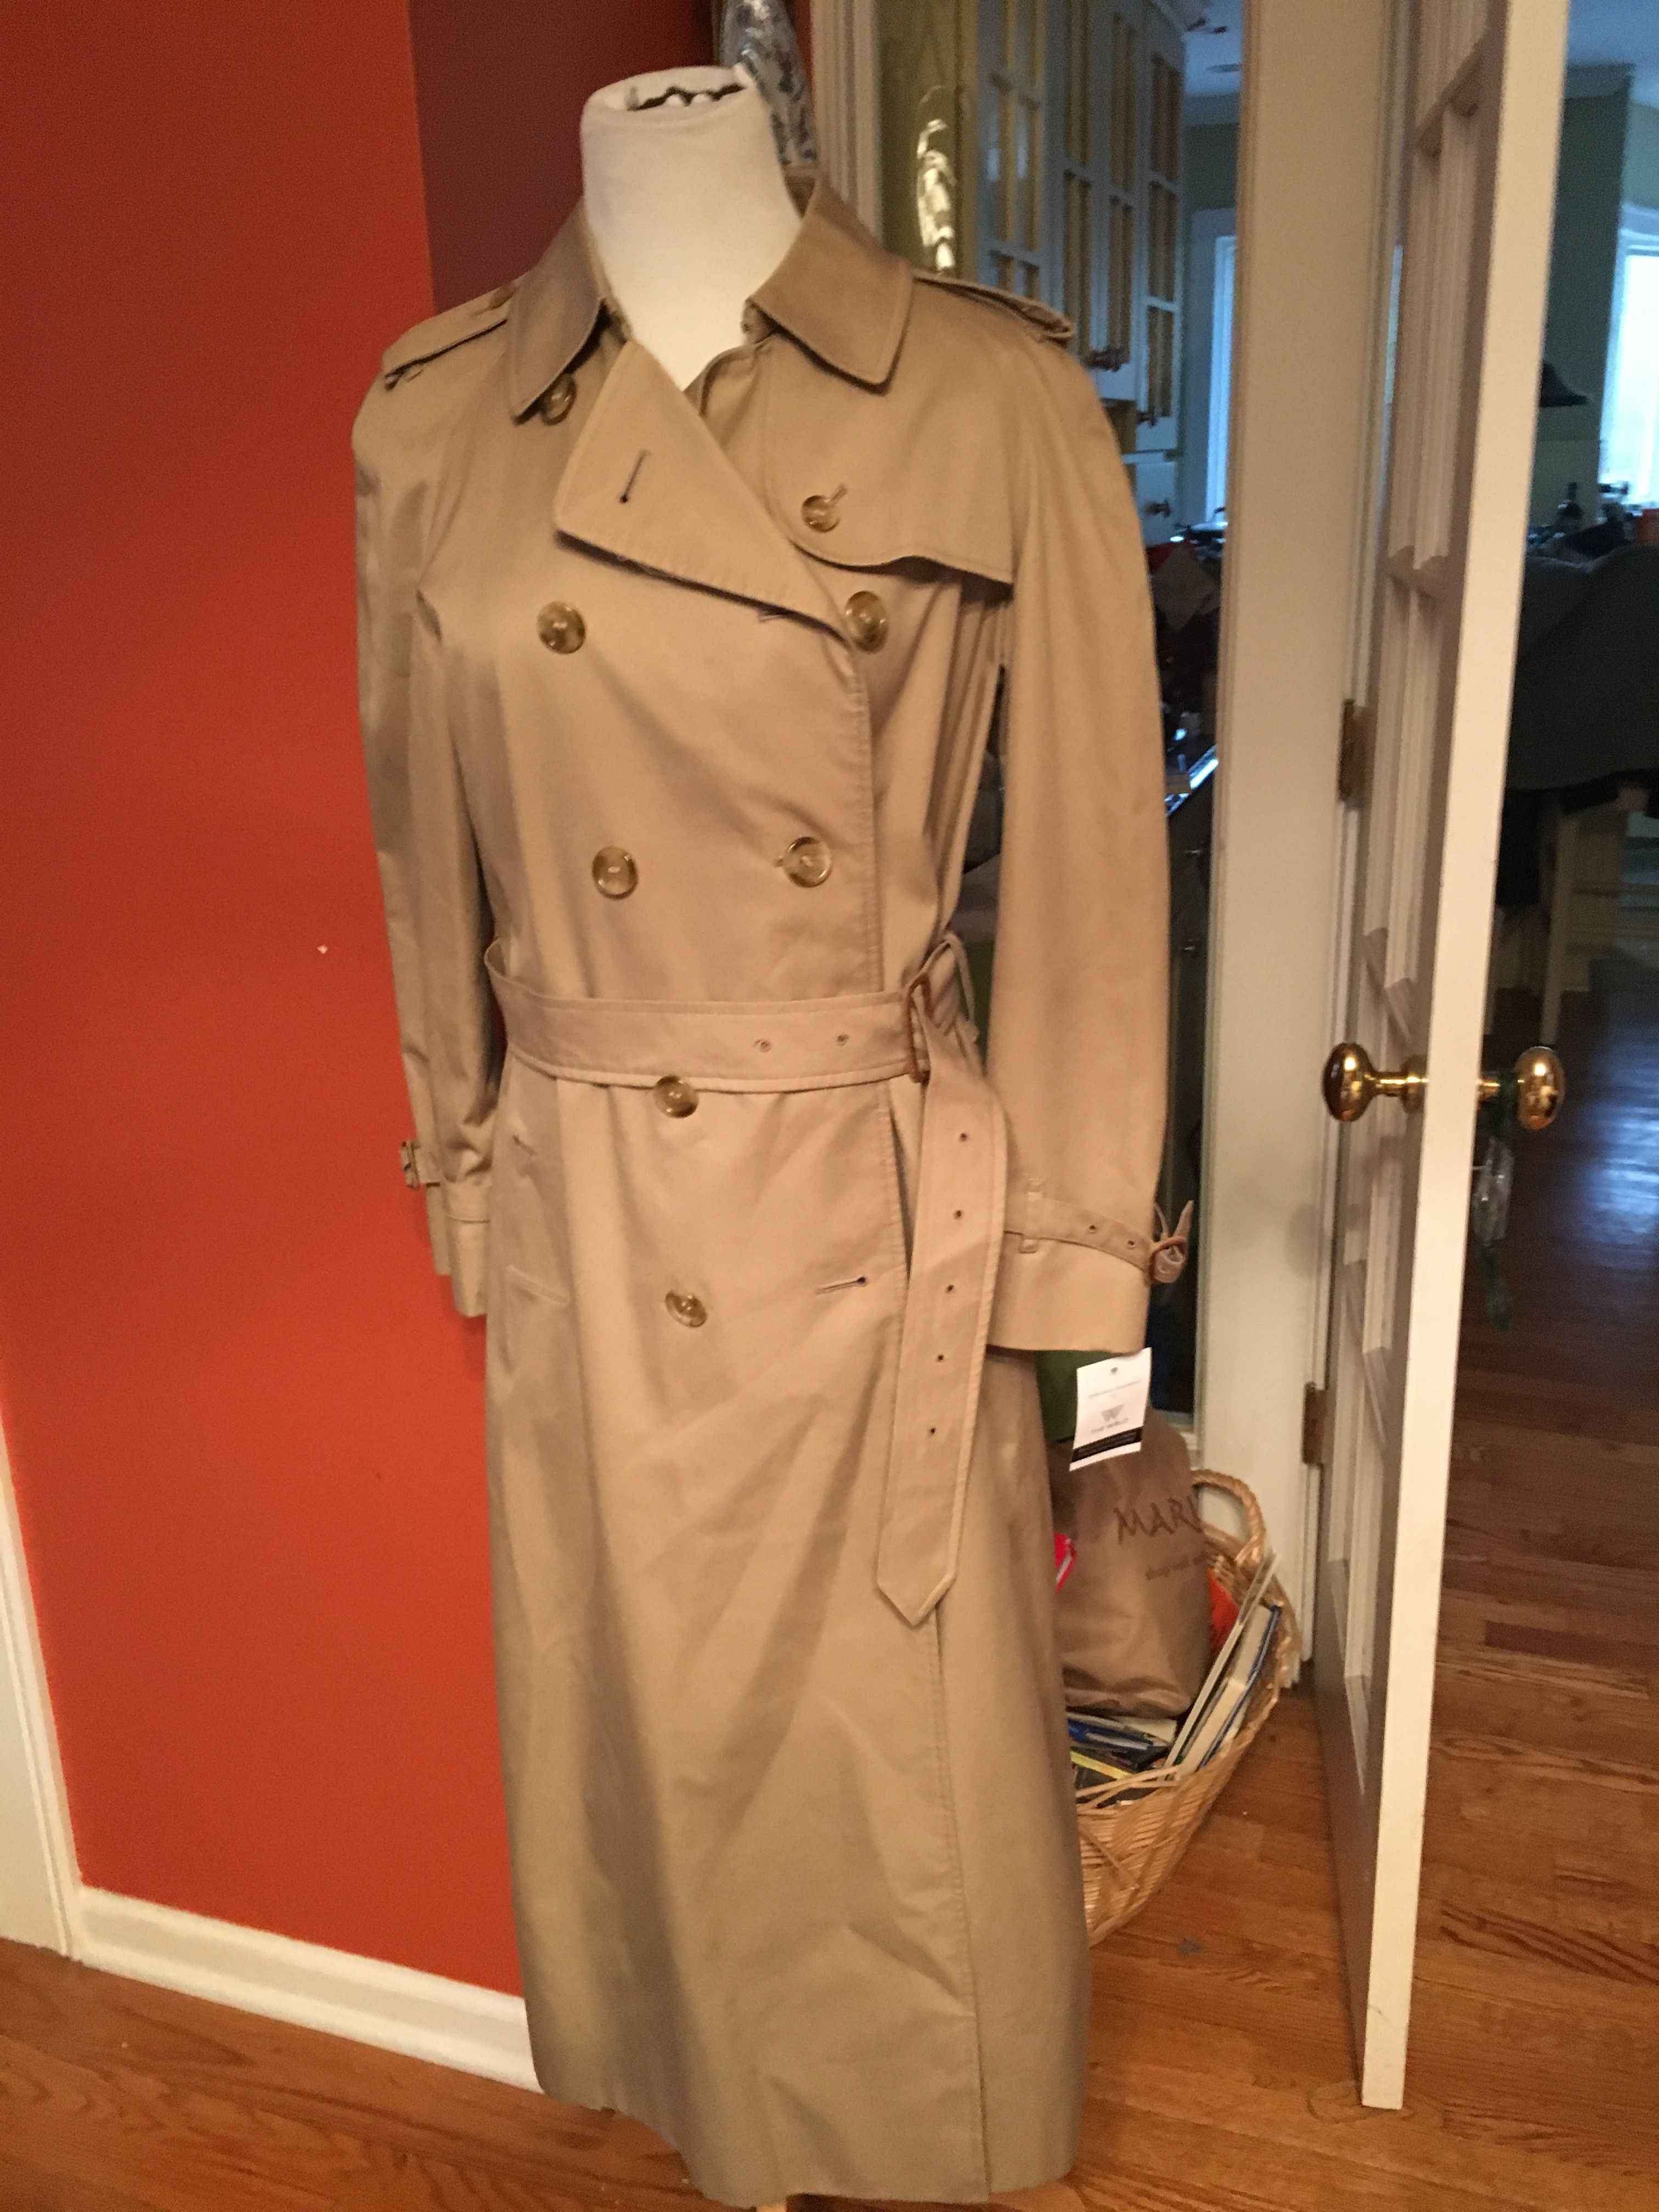 NWT Classic Burberry Tan and Novacheck Belted Trench Coat. Buttons in front and belt is adjustable. Size Medium, also fits a small and it is as classy as it is classic. Retails for $1850!